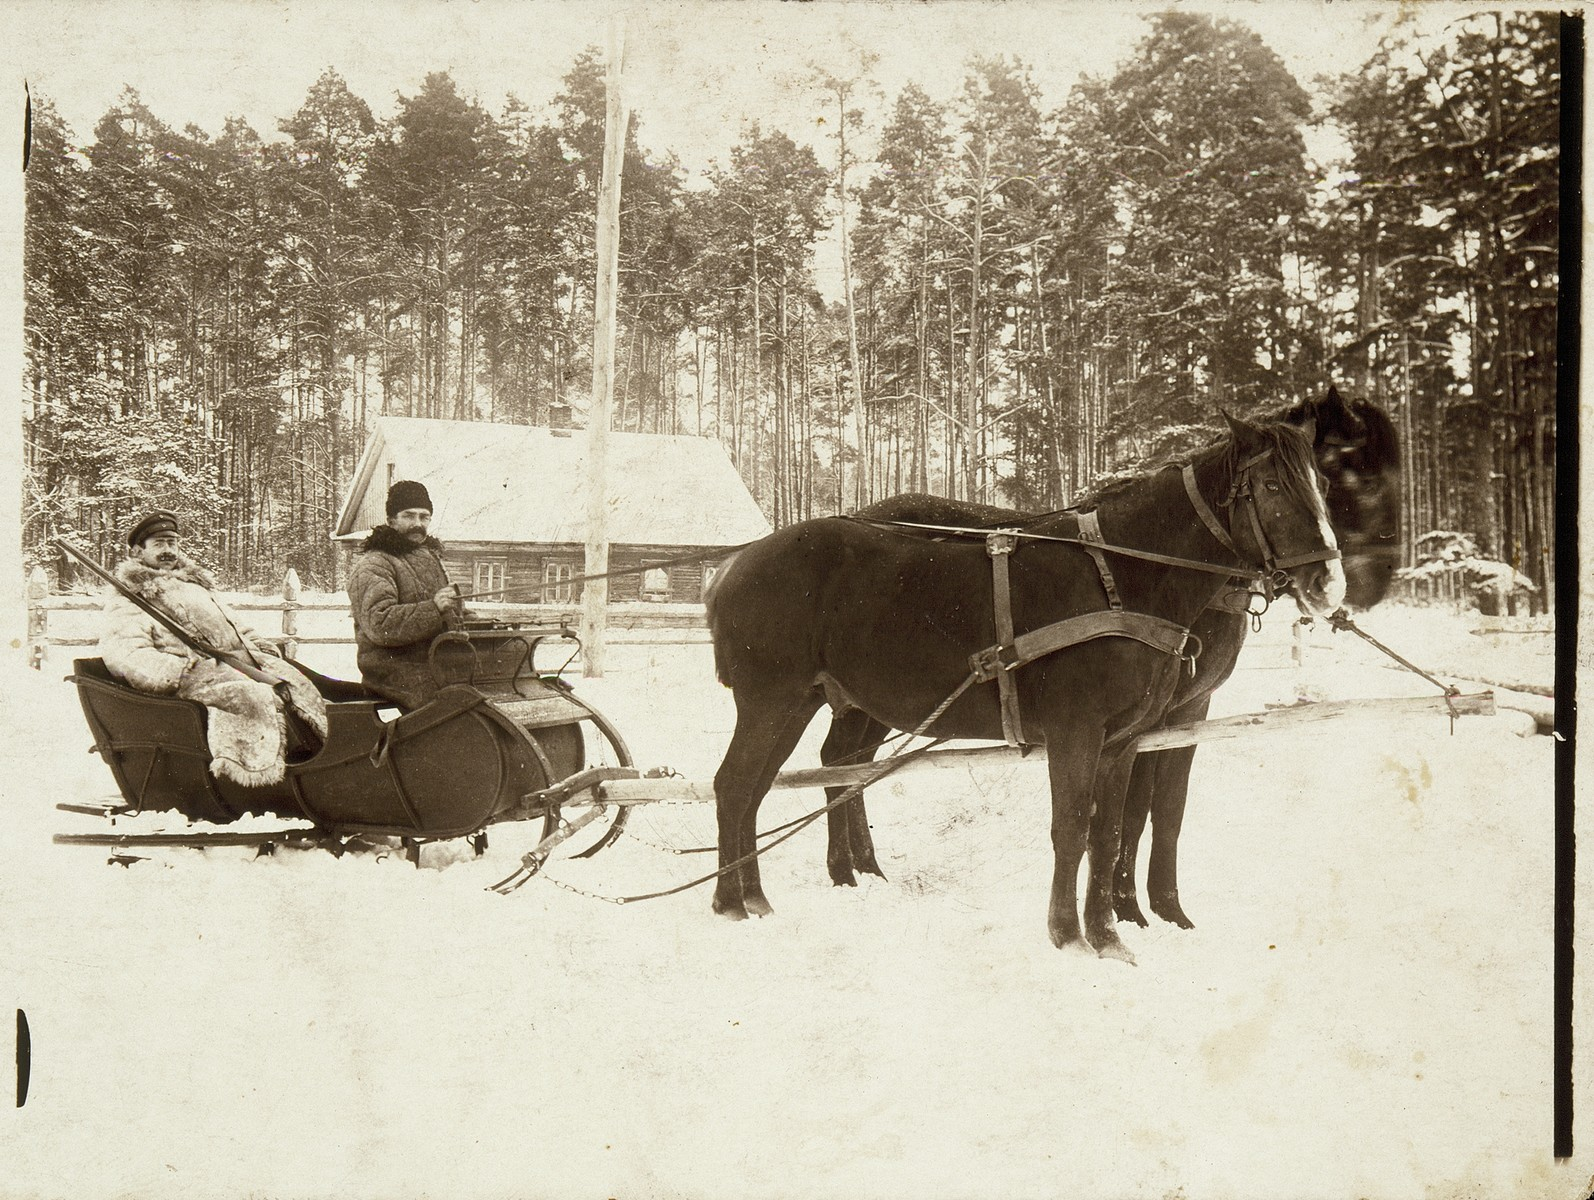 A Jewish coachman drives Varishnakov, a high ranking Russian officer, on a sleigh to a hunt.    The coachman was murdered in the September 1941 massacre.